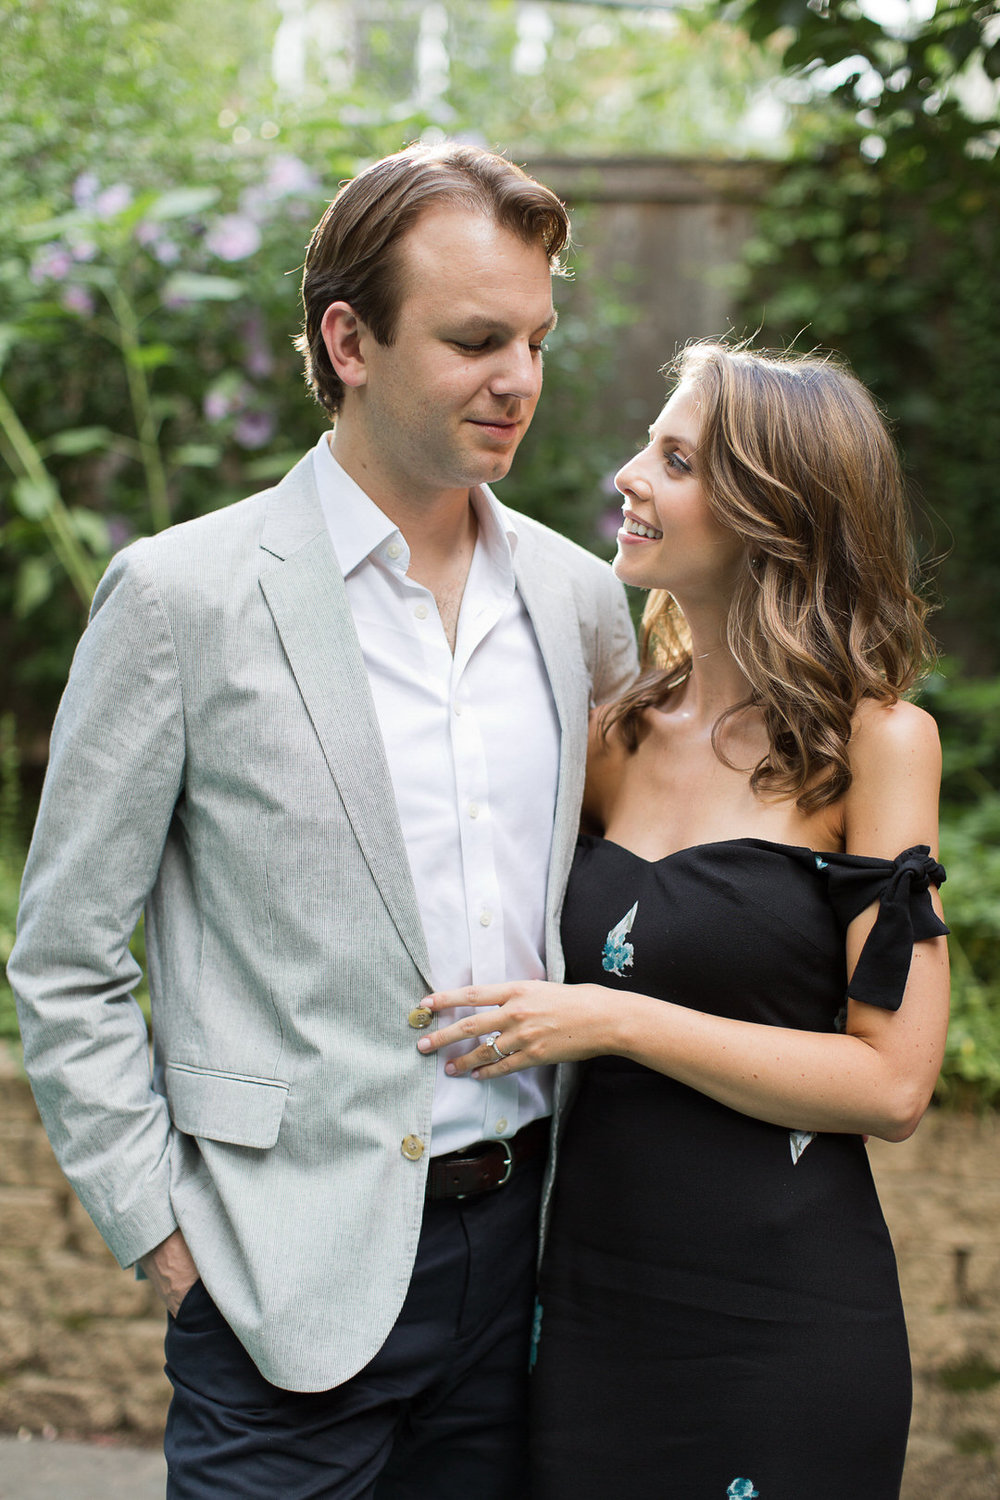 Melissa Kruse Photography - Meghan & Pete Engagement Photos-66.jpg